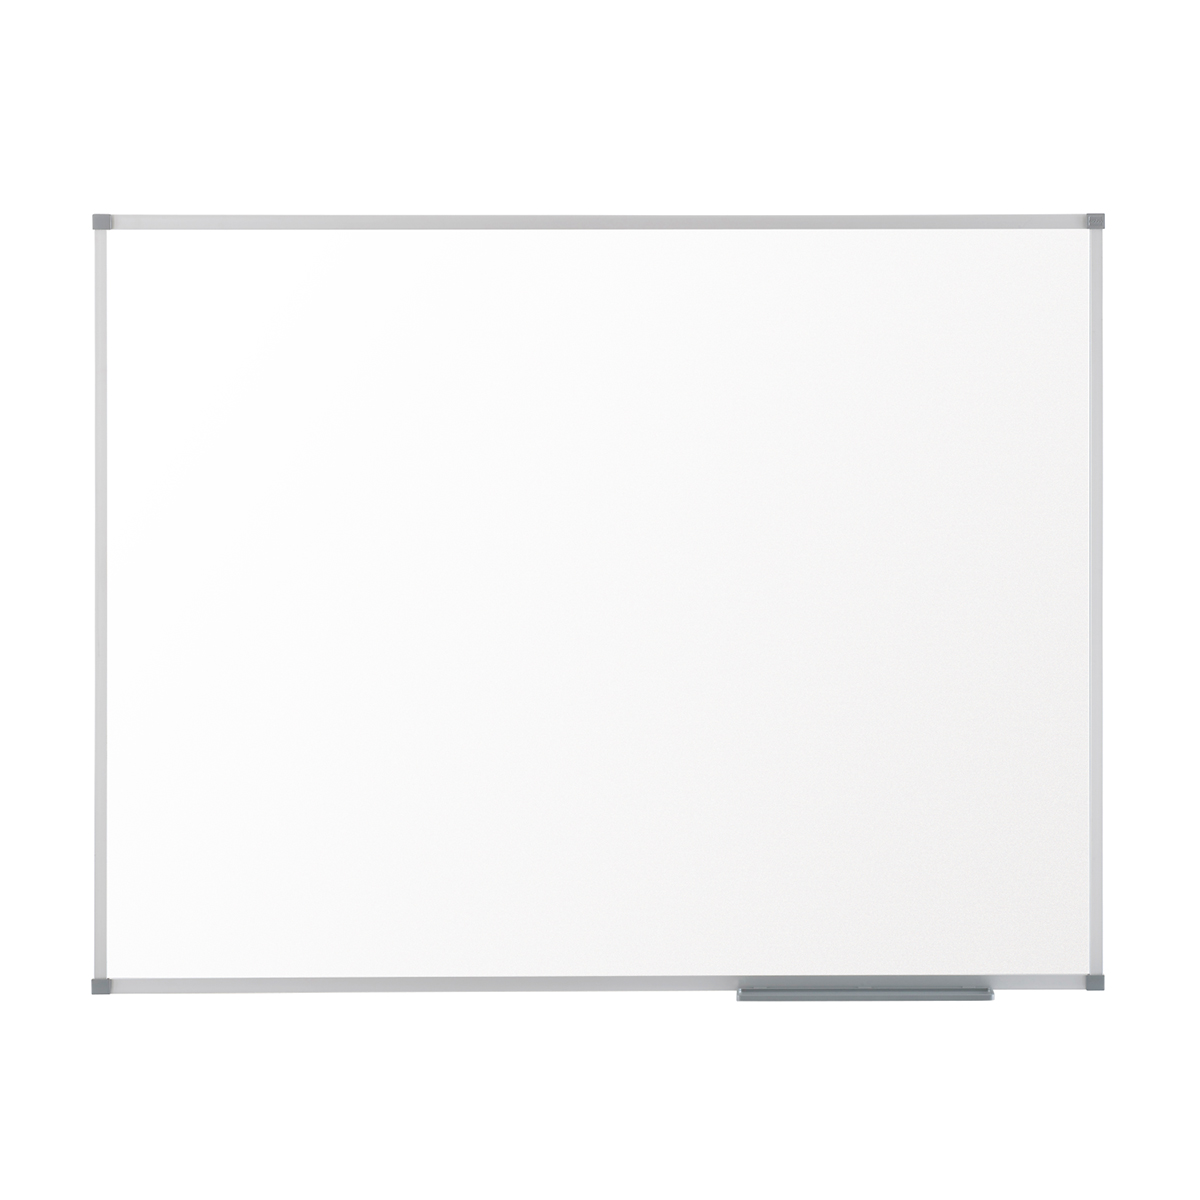 Nobo 1902645 Classic Steel Magnetic Whiteboard 1800 x 900mm